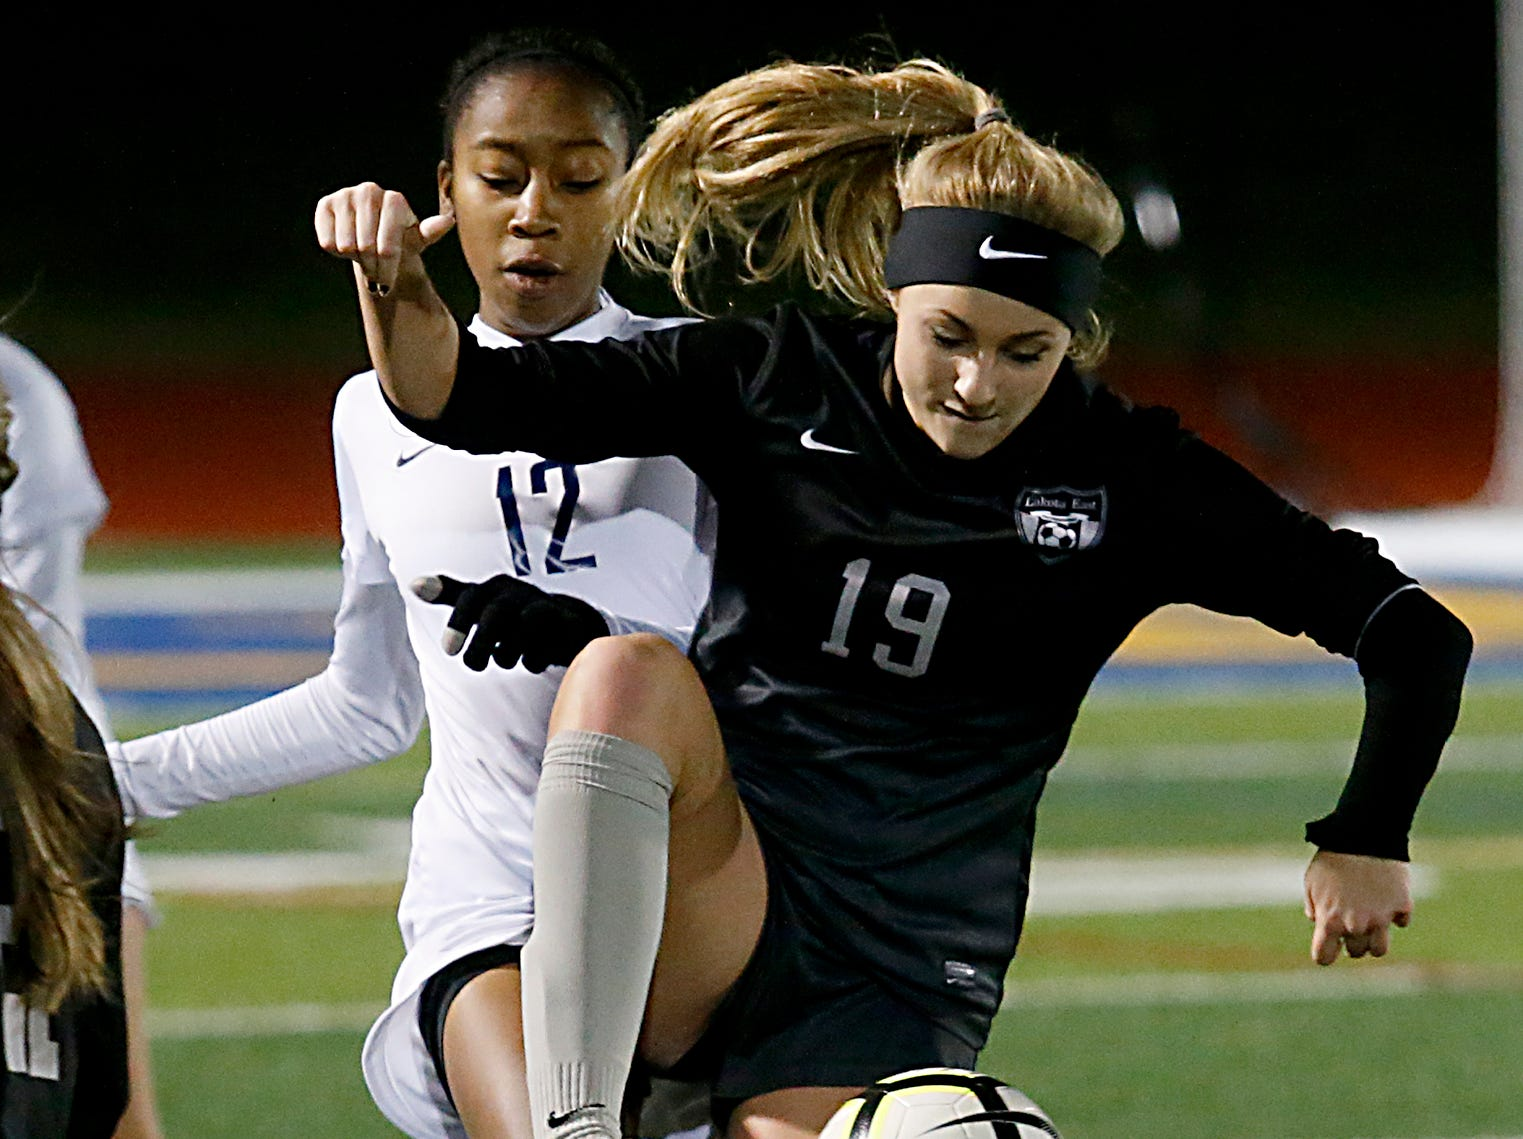 Mount Notre Dame forward Rey Riggins tries to steal from Lakota East defender Alexis Trammel during their Division I Southwest district final soccer game at Walnut Hills in Cincinnati Saturday, Oct. 27, 2018.